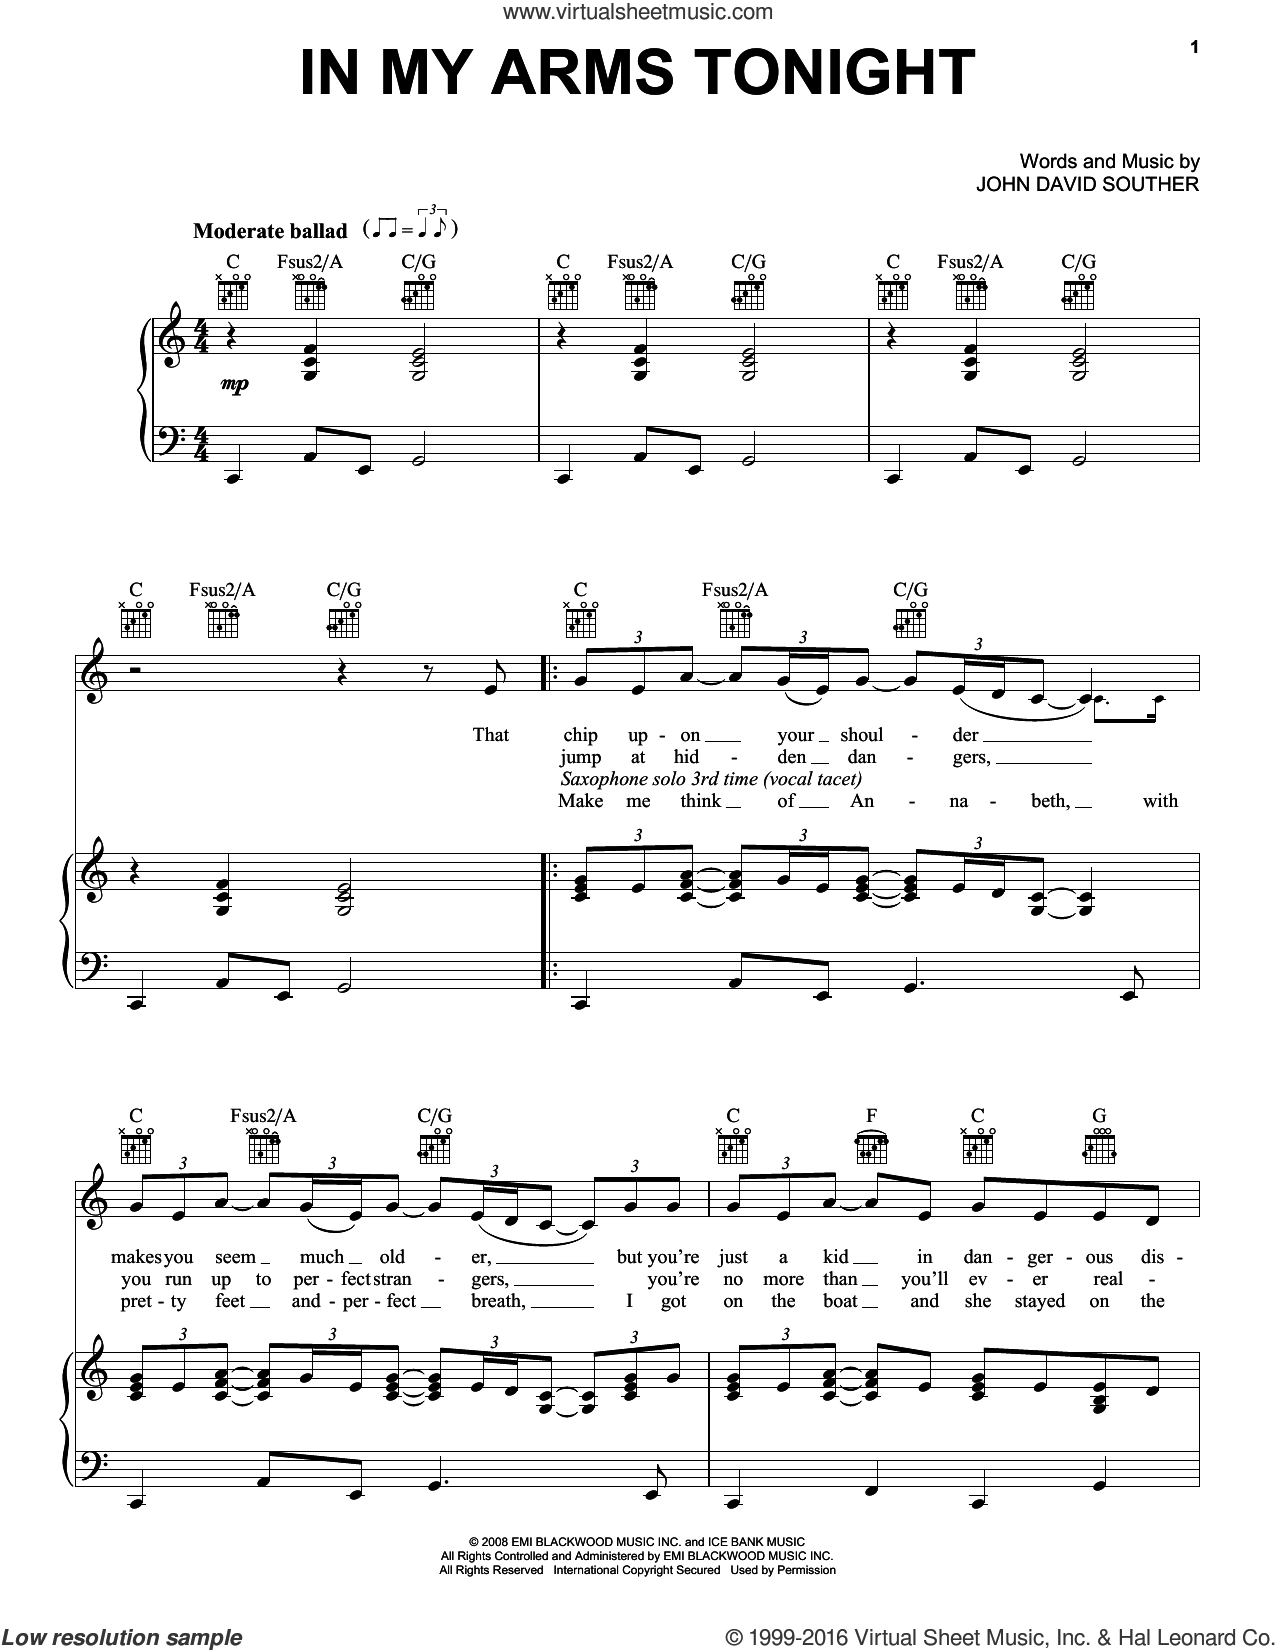 In My Arms Tonight sheet music for voice, piano or guitar by John David Souther. Score Image Preview.